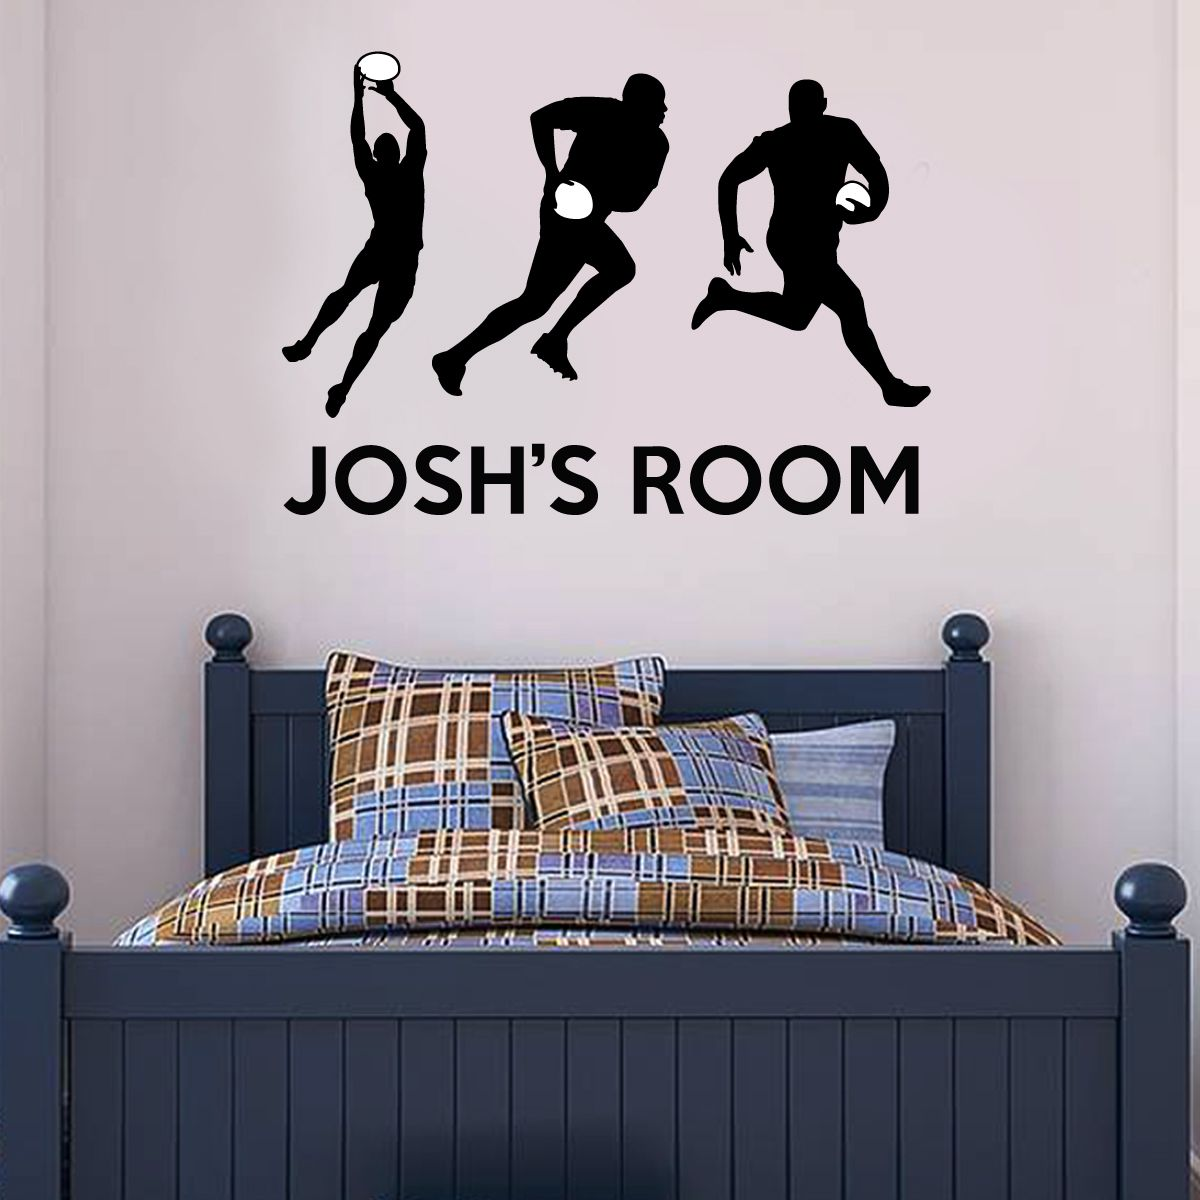 Black Rugby Players Name Wall Sticker Wall Stickers Football Wall Stickers Bedroom Decorations Kids Bedroom Spor Wall Stickers Bedroom Black Sports Wall